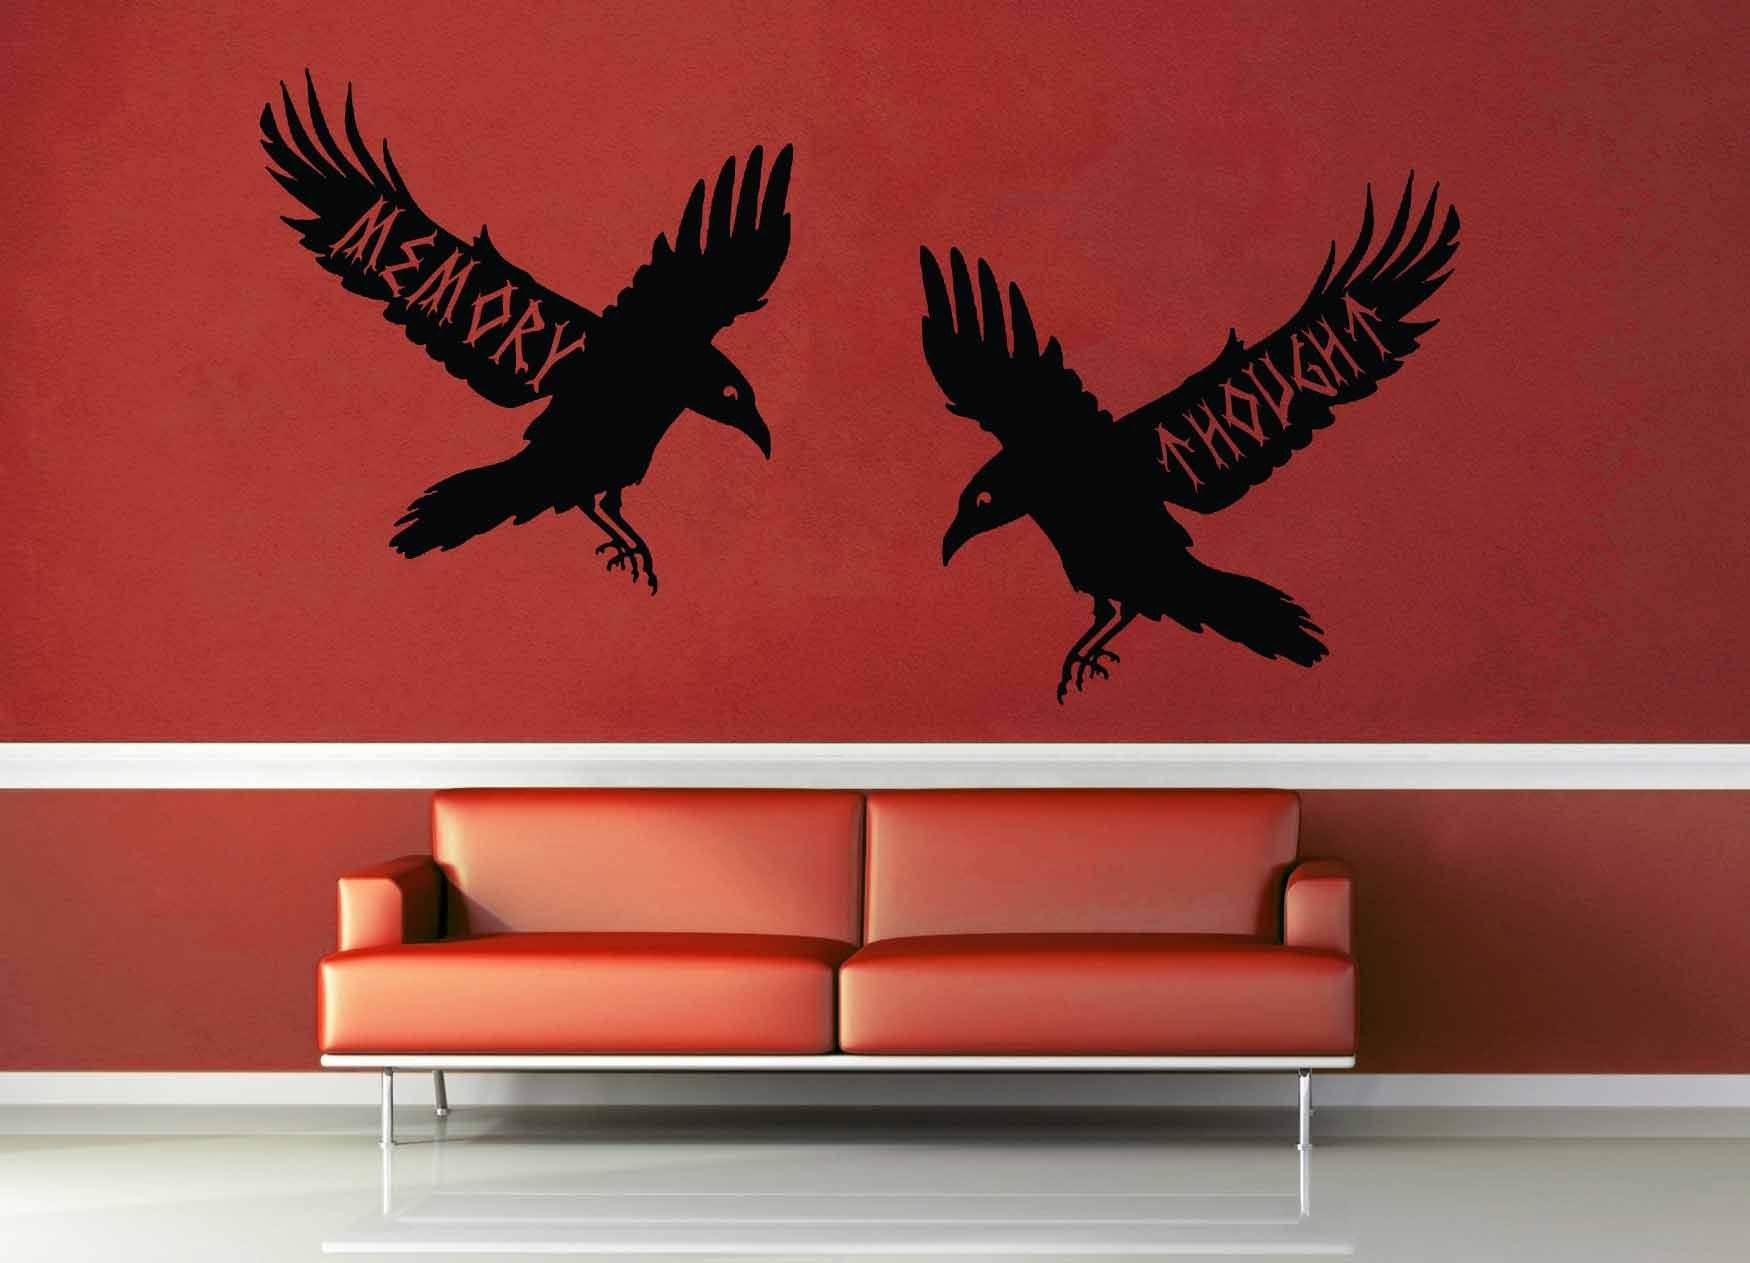 Huginn and Muninn - Norse Mythology - Wall Decal - geekerymade